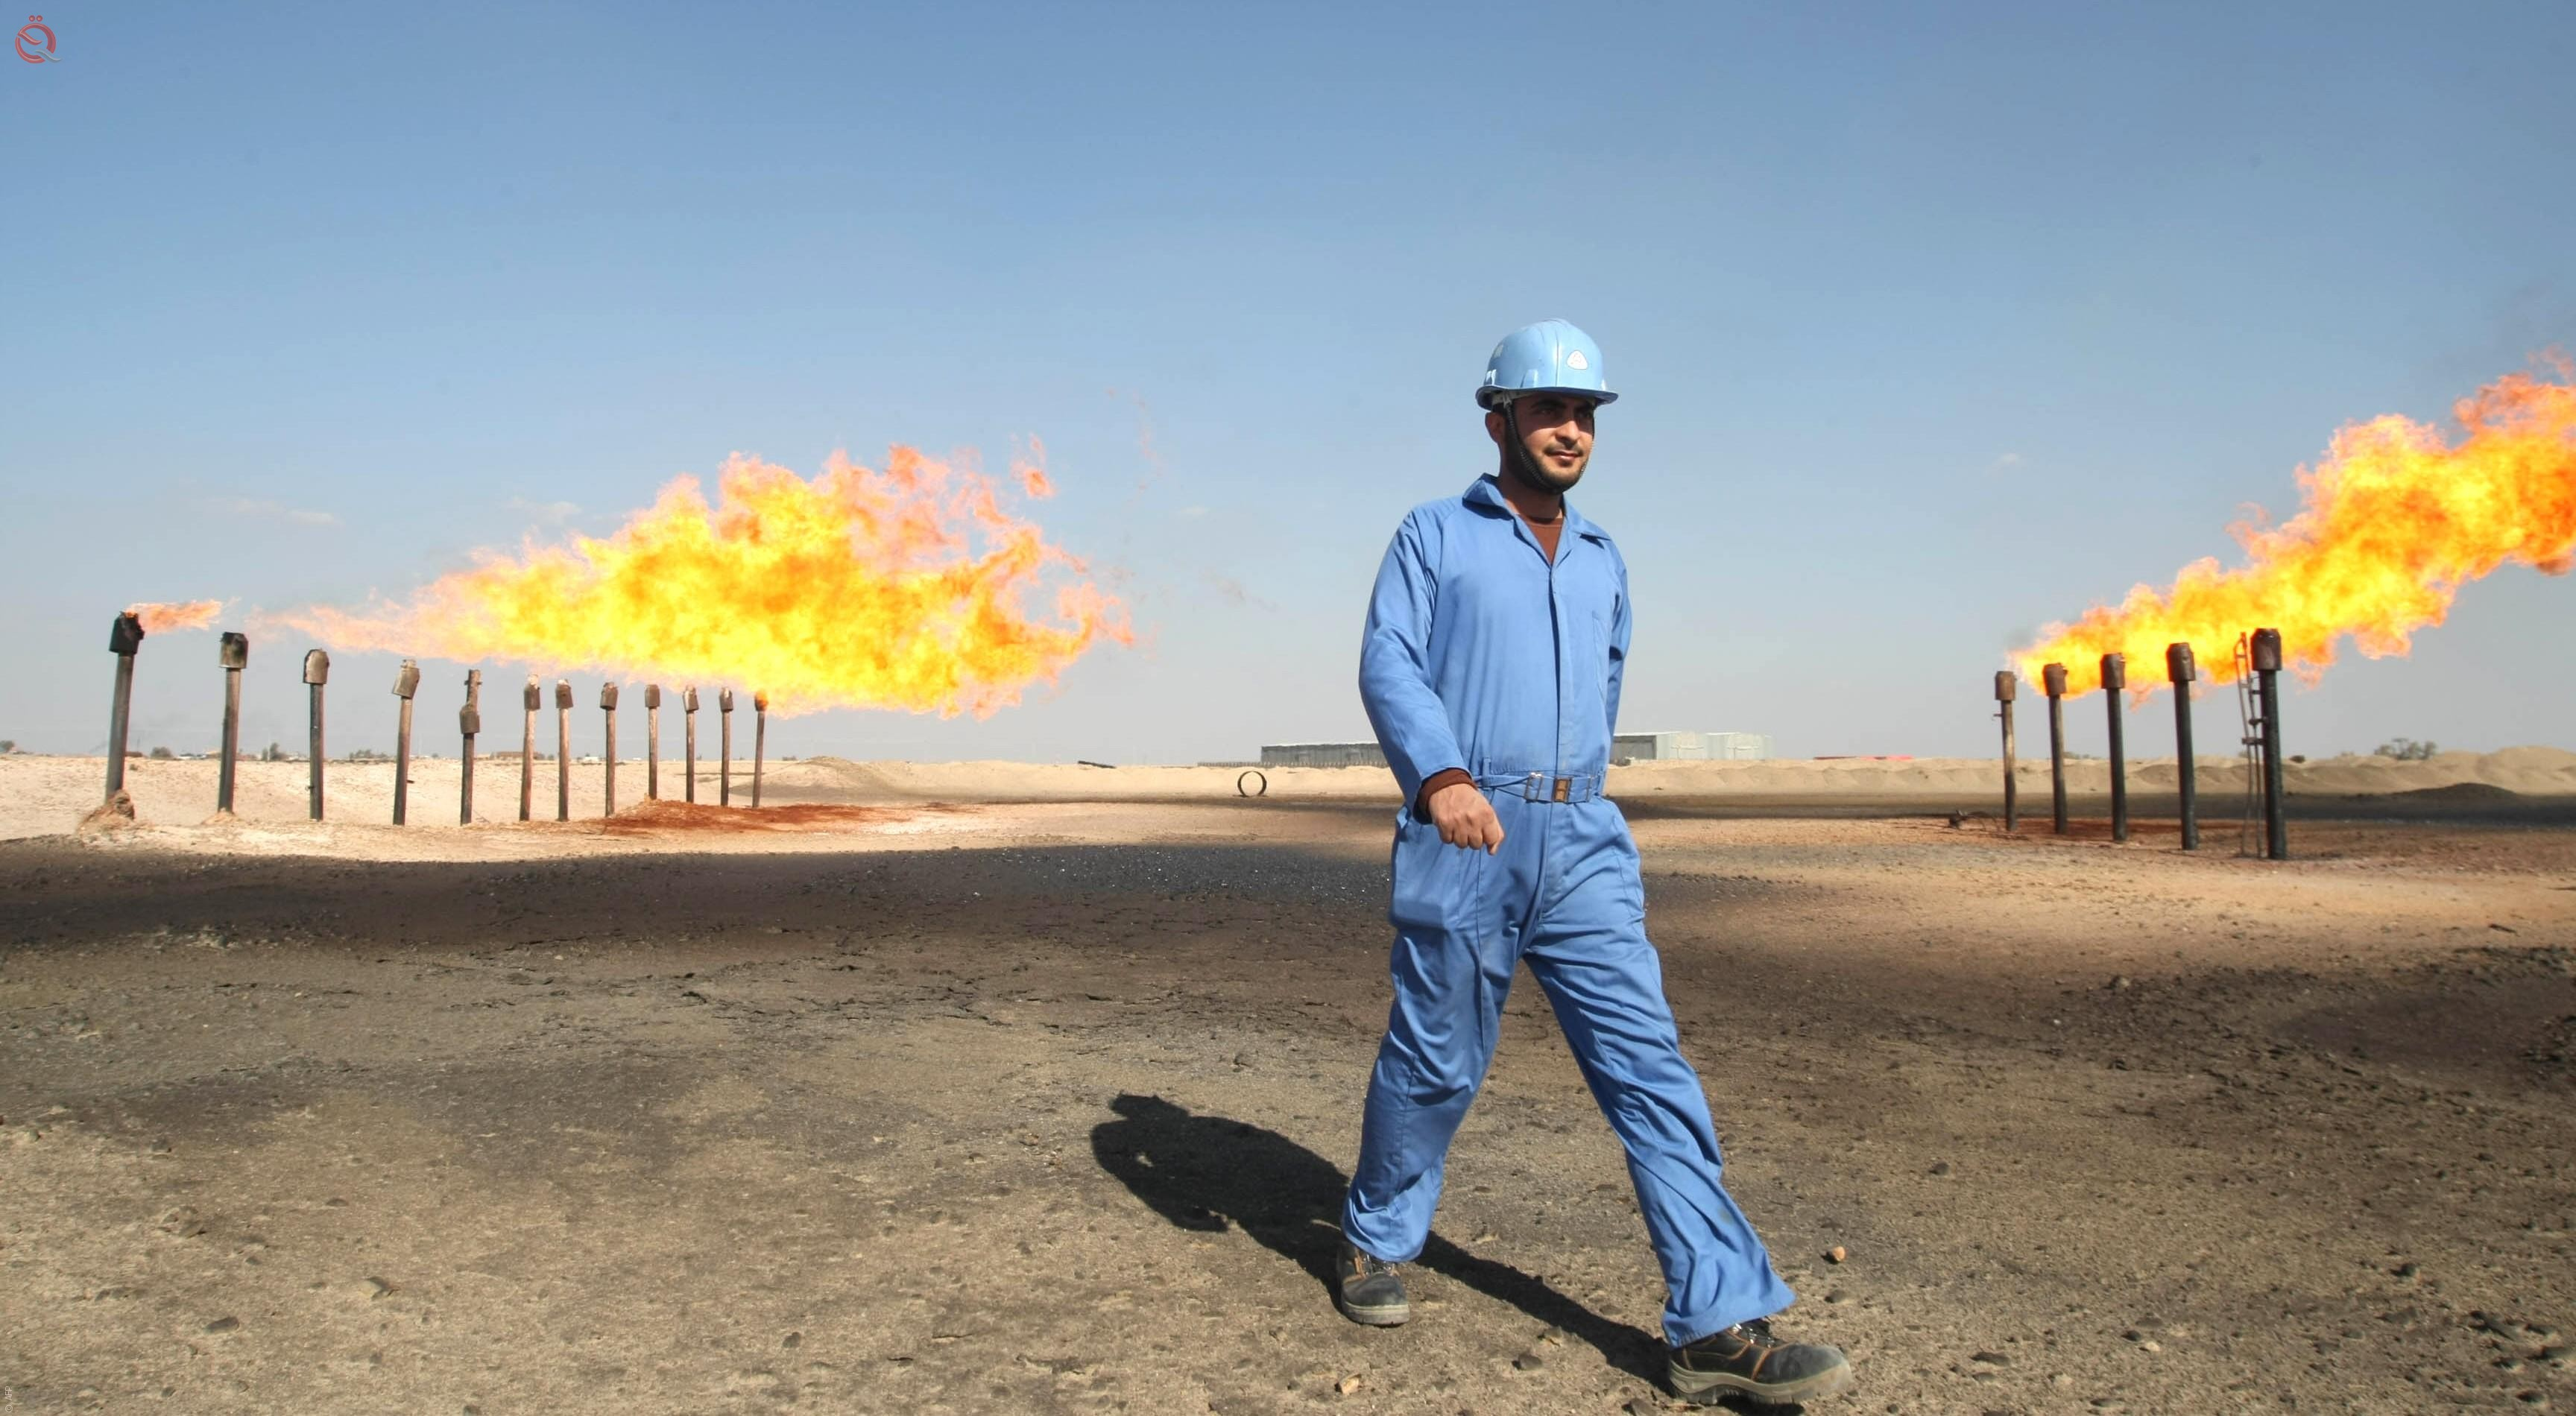 The Korea Gas Corporation produces 500,000 barrels per day from a field in southern Iraq 16985